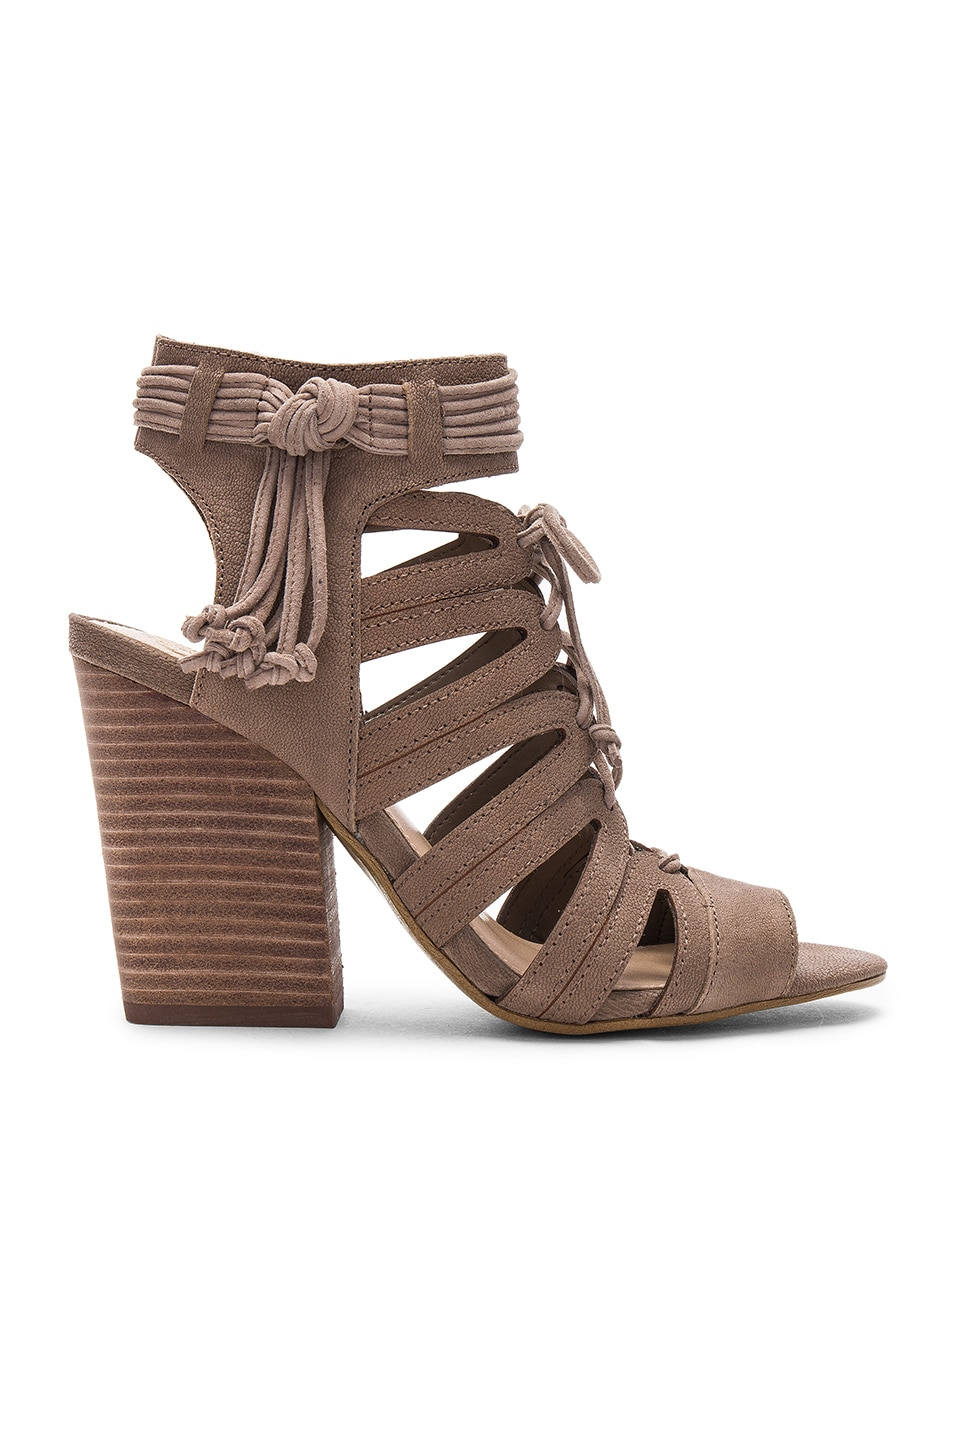 Photo of Ranata Heel by Vince Camuto shoes